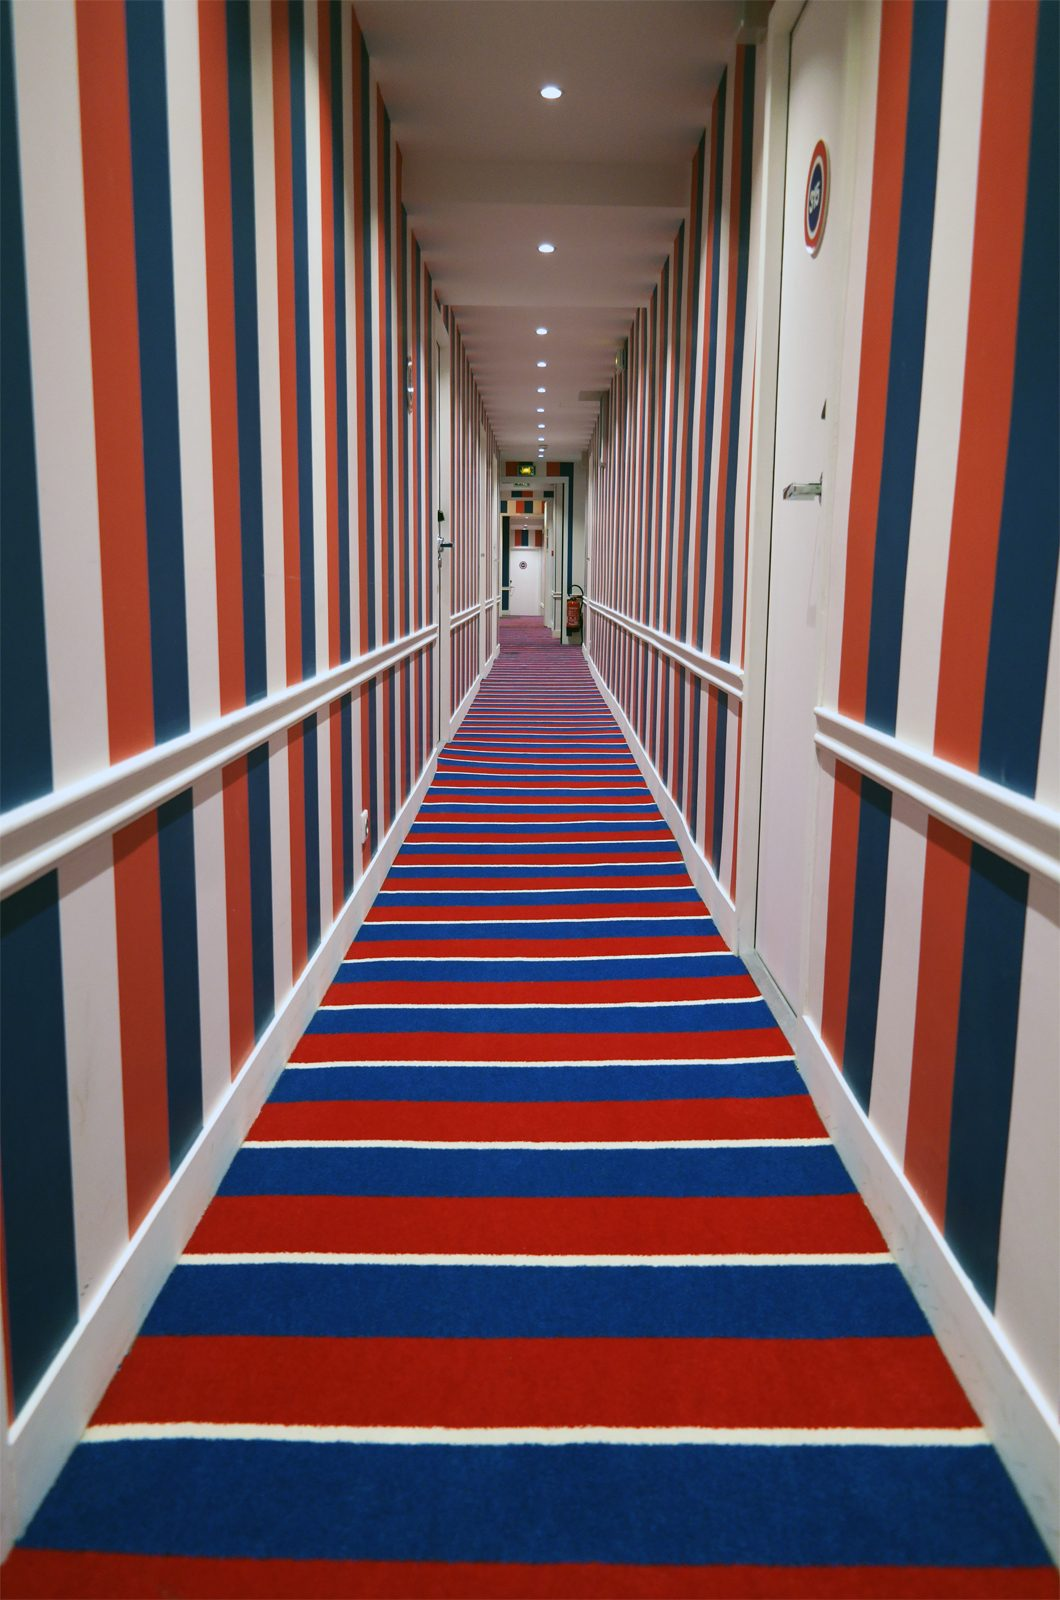 Le 34B hotel astotel paris 34 rue Bergere 75009 tricolor corridor french design photo usofparis blog